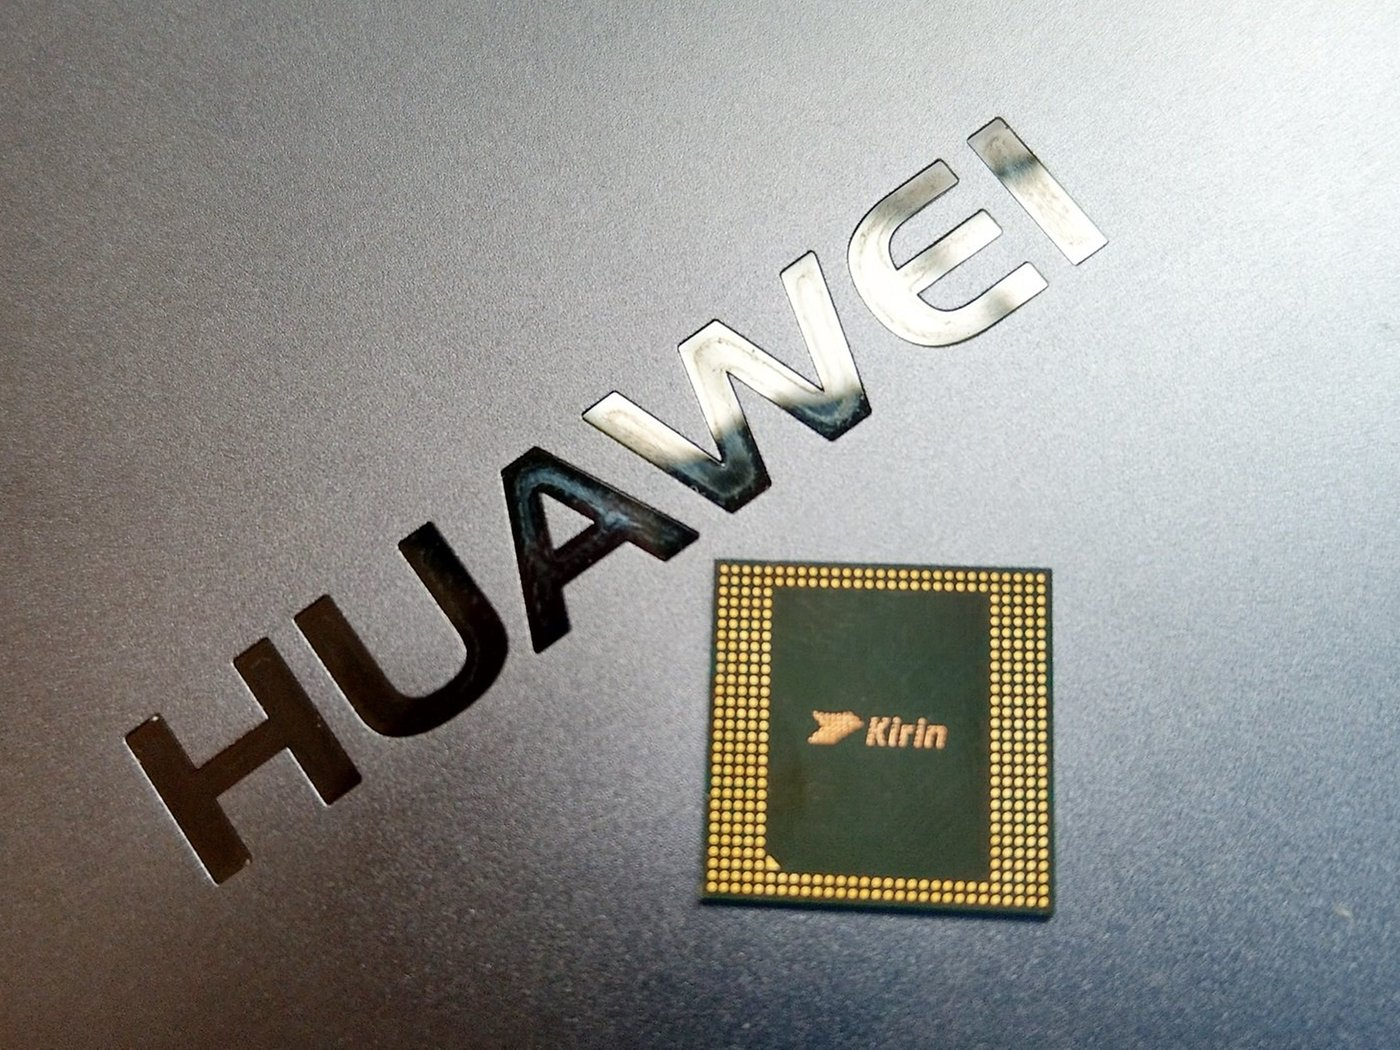 Kirin 970: Huawei leaps past Qualcomm and Samsung with its